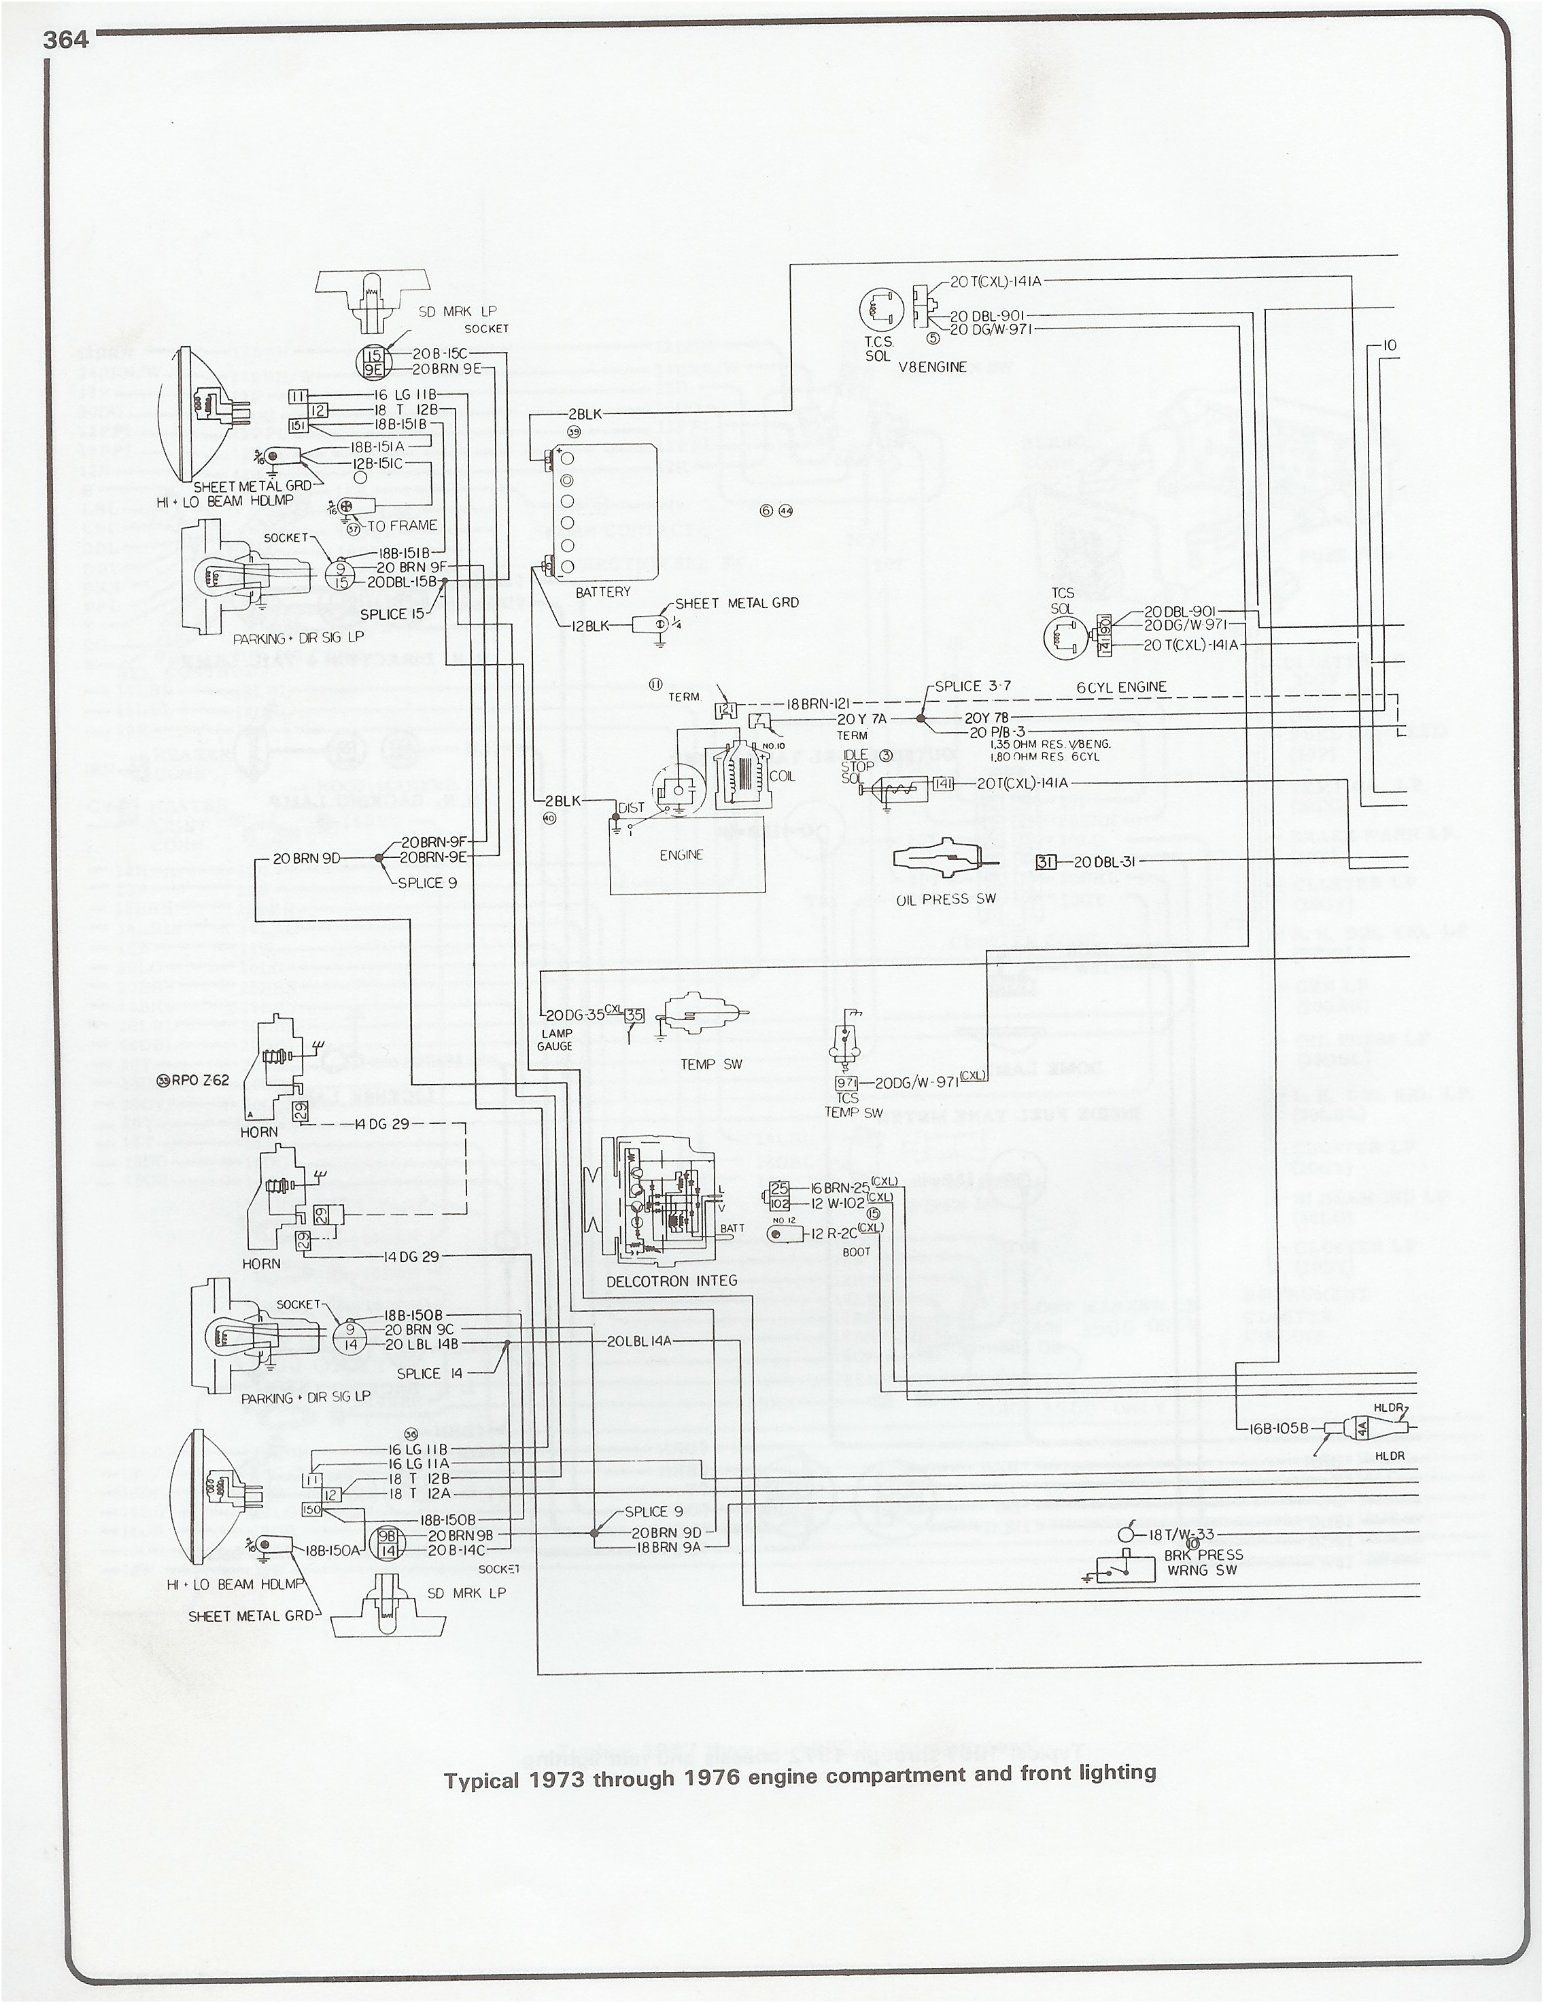 medium resolution of 1976 gmc fuse panel diagram wiring diagram used1976 gmc silverado fuse box wiring diagram new 1976